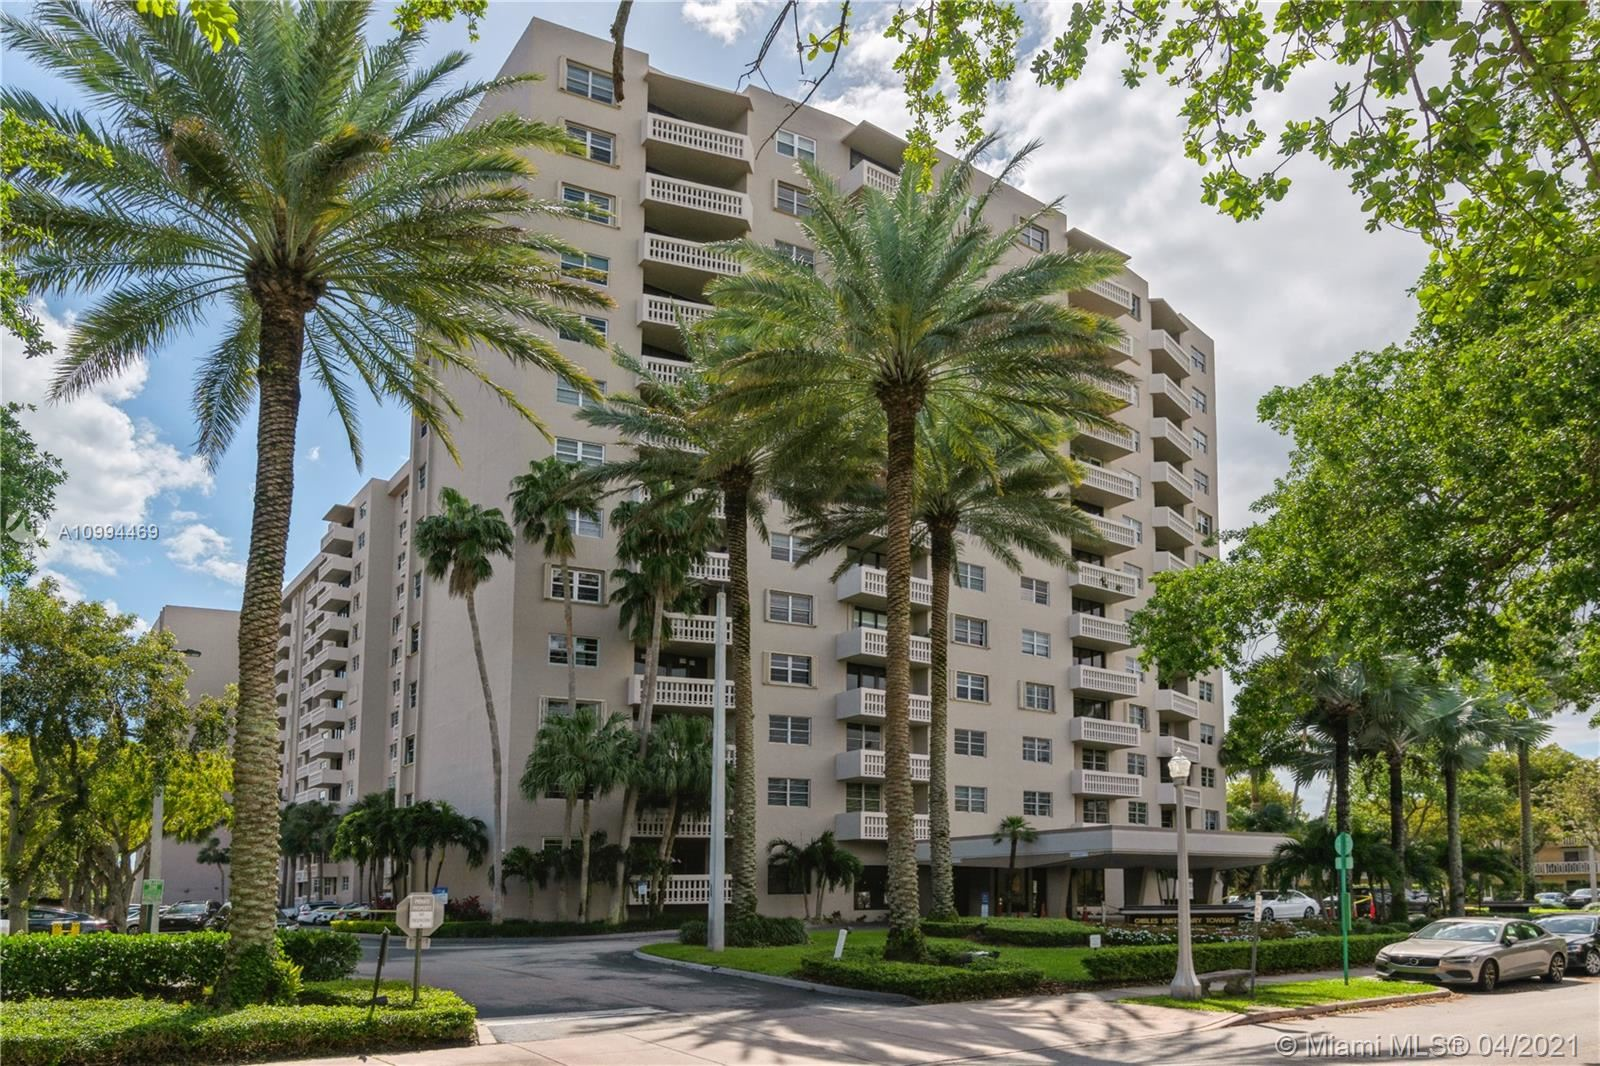 90 Edgewater Dr #1009, Coral Gables, FL 33133 - #: A10994469